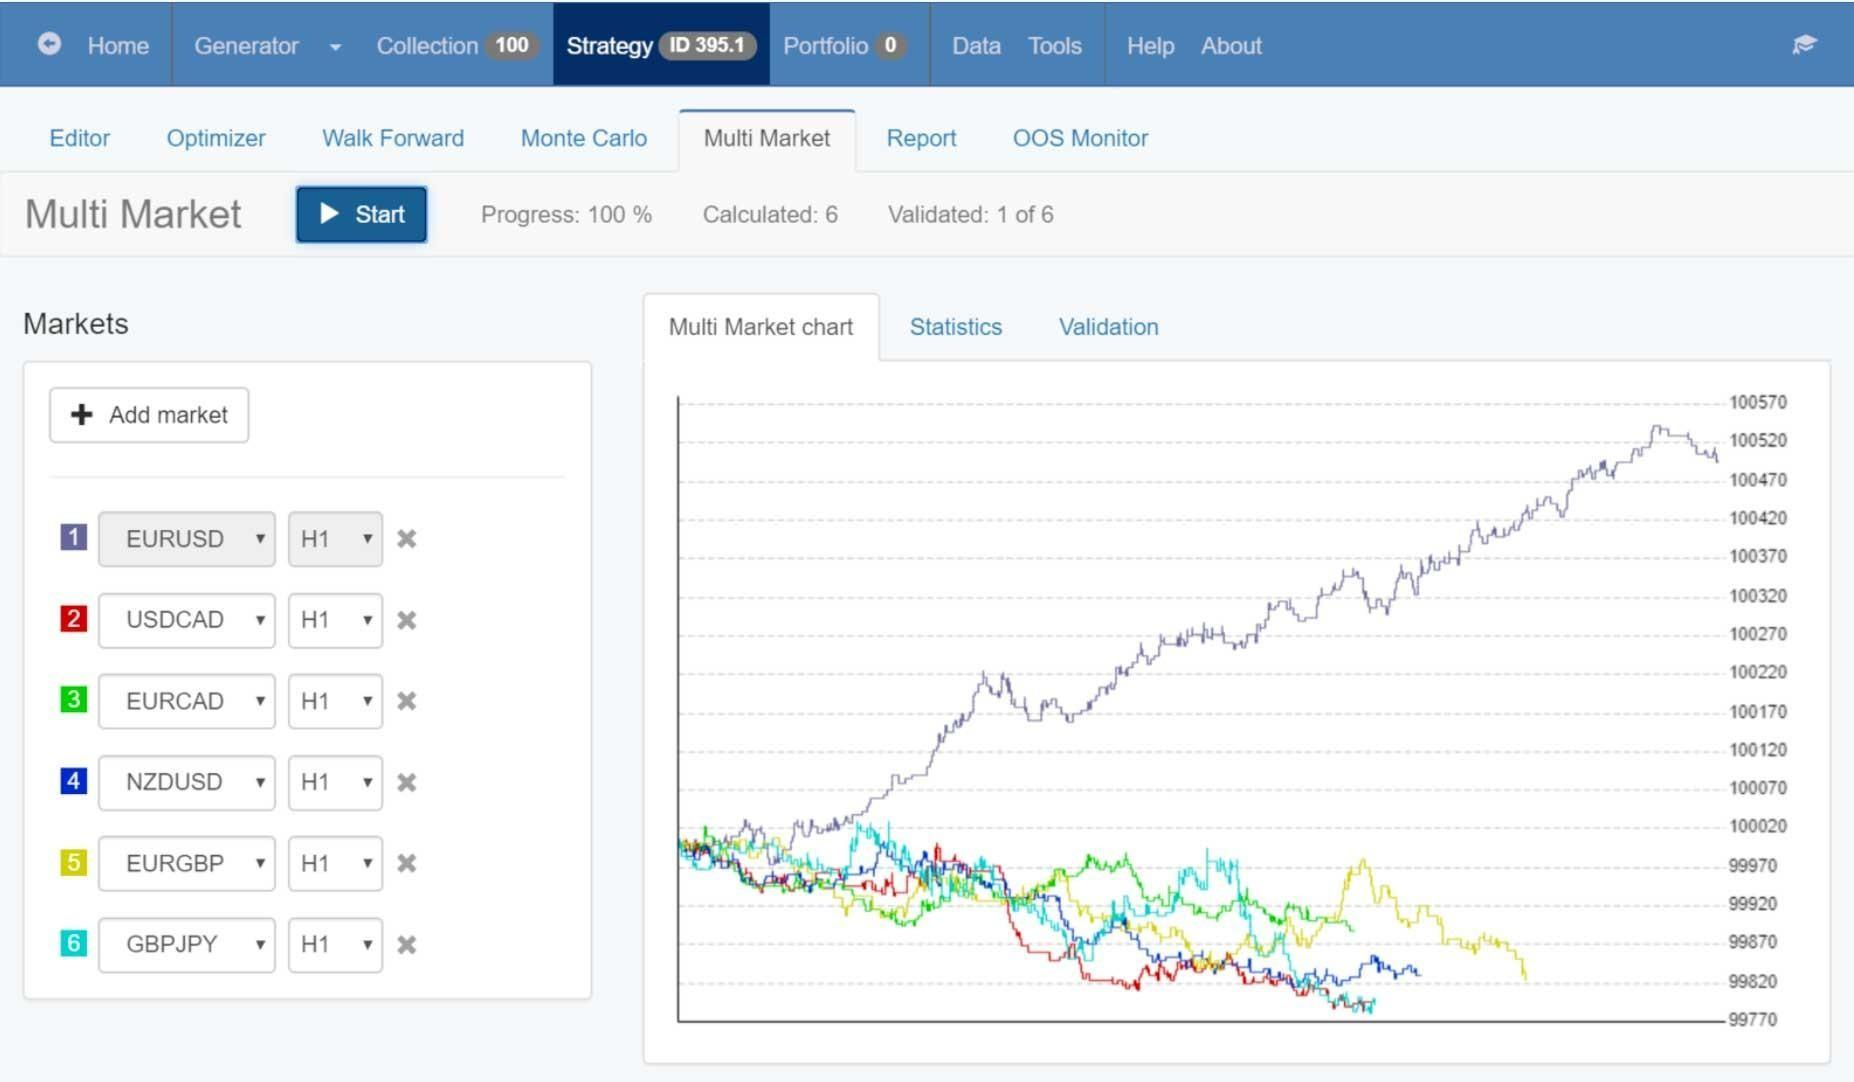 How To Check Trading Strategy For Robustness Using Powerful Stress Tests?